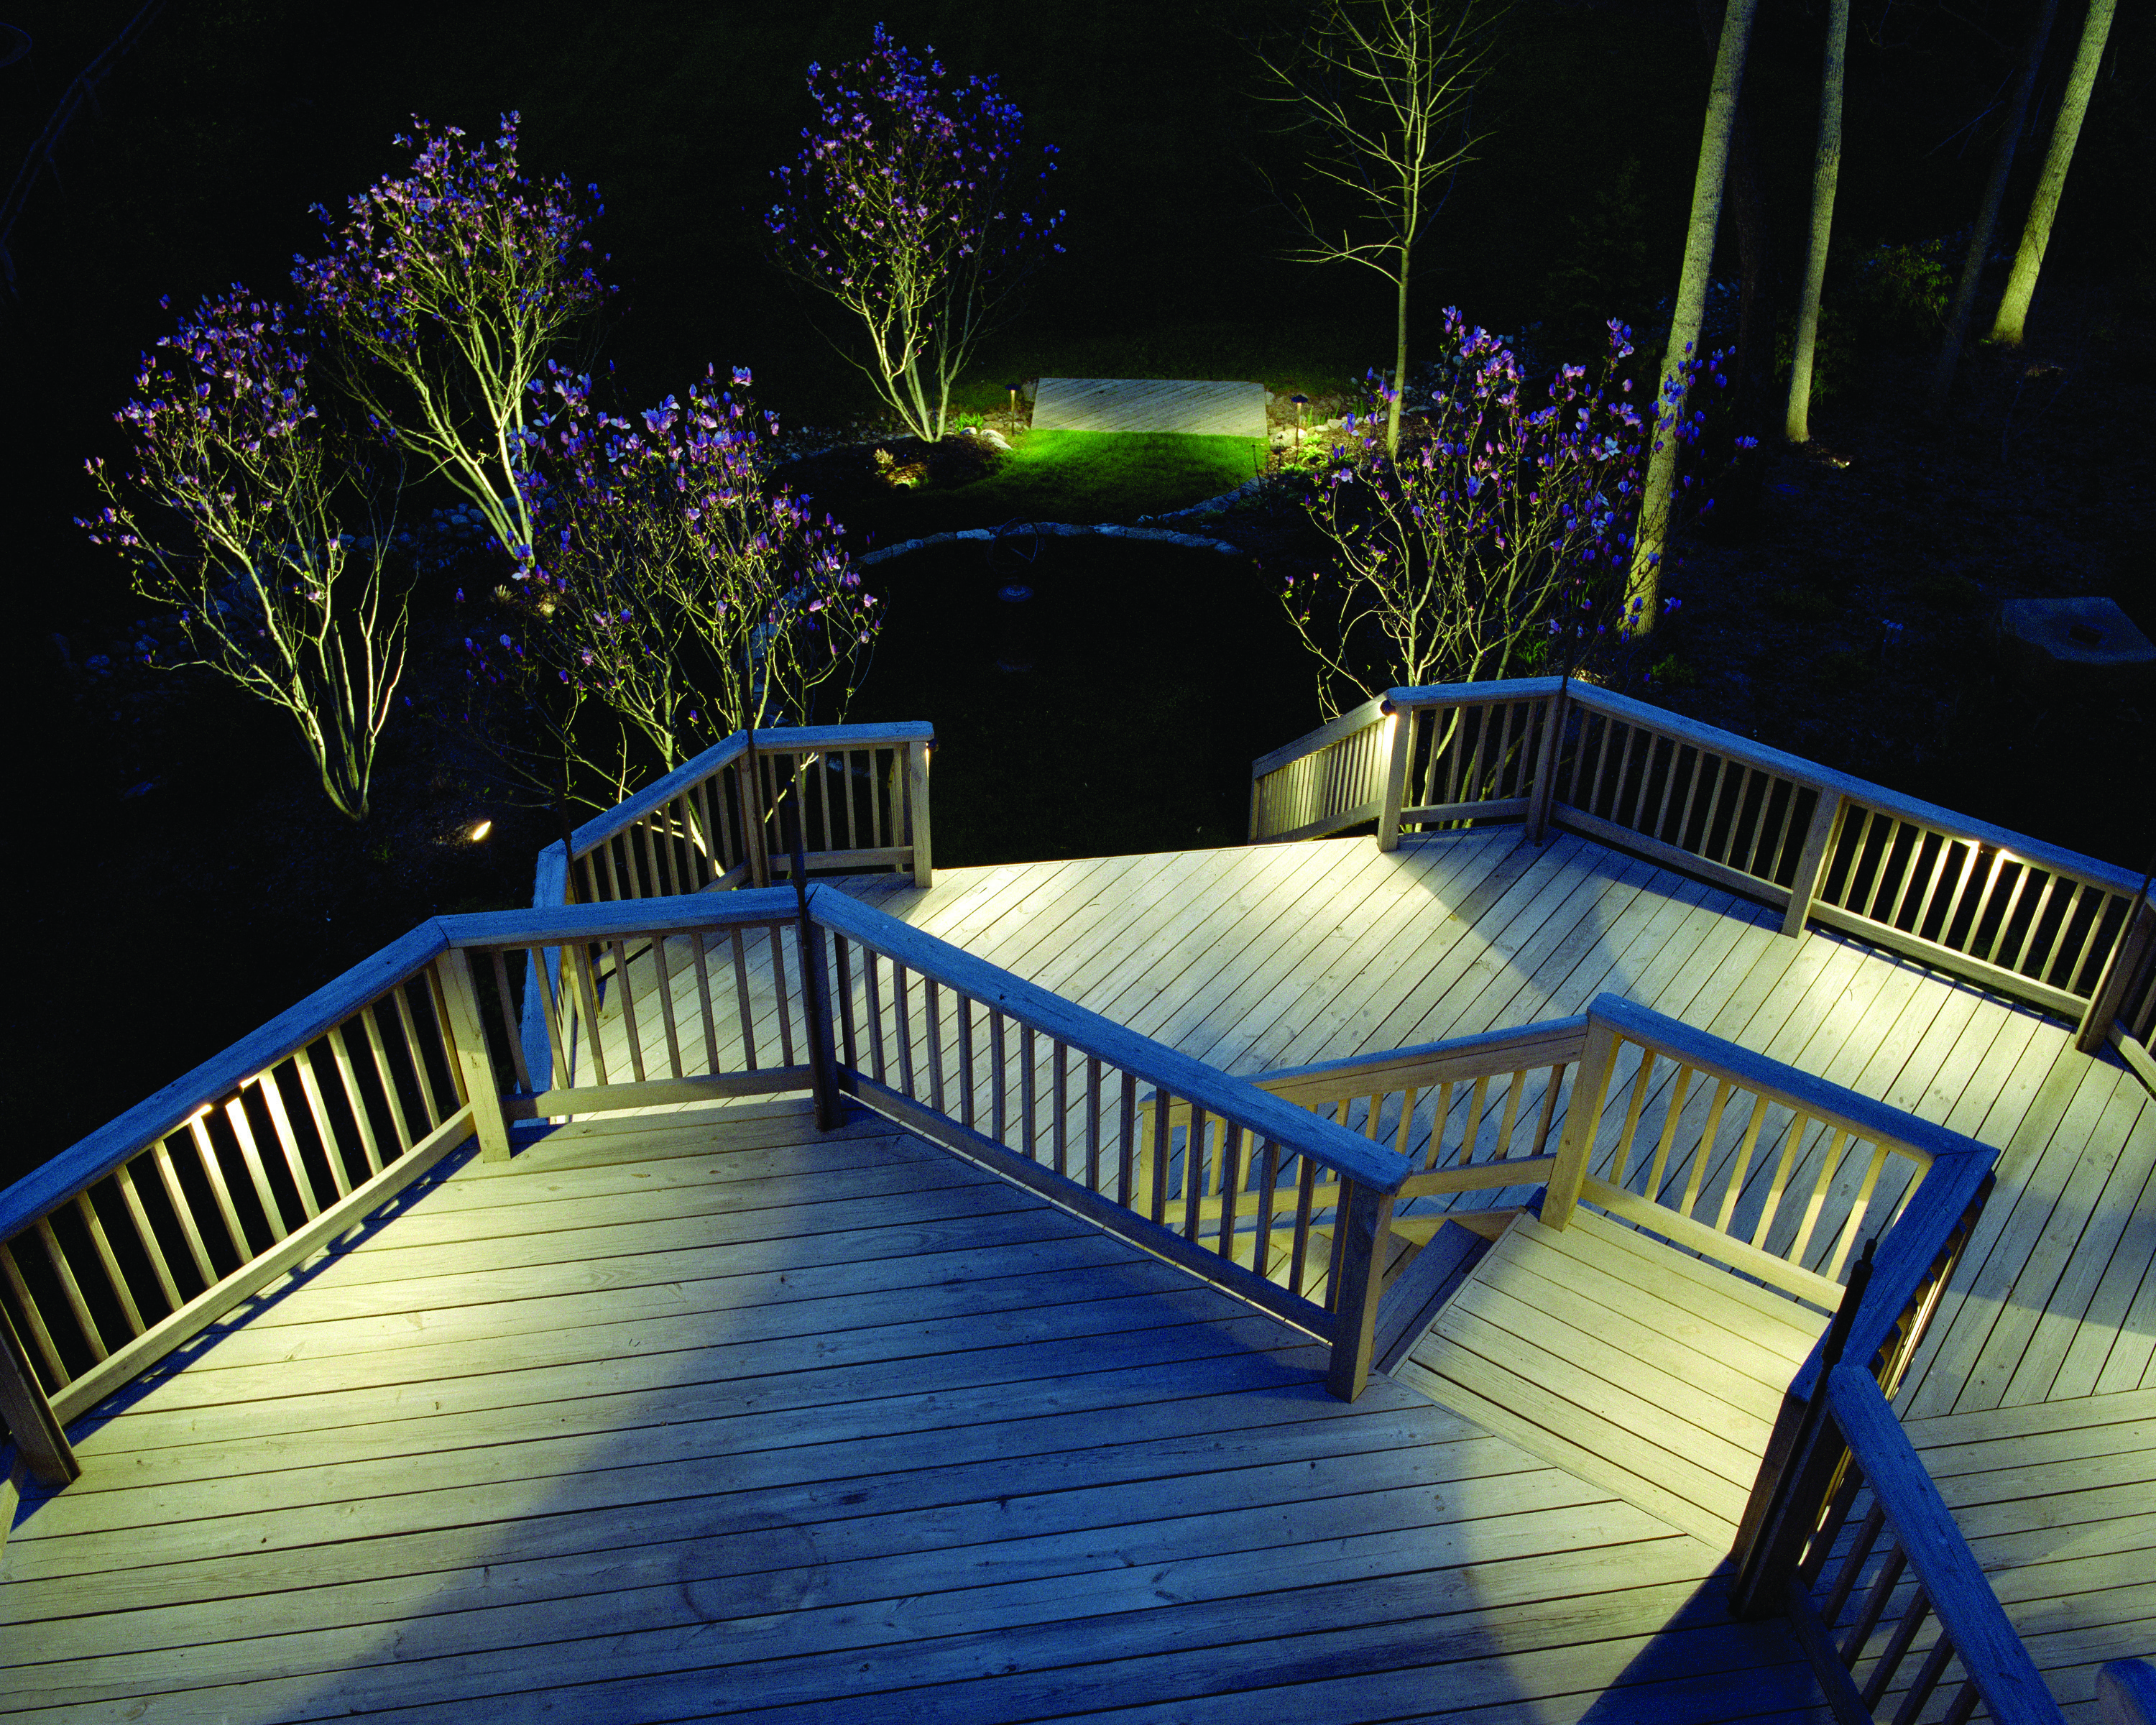 Seattle patio lighting and deck lighting with your patio and deck being an extension of your indoor living space it invites us to use your house itself as a place to add a light fixture aloadofball Image collections